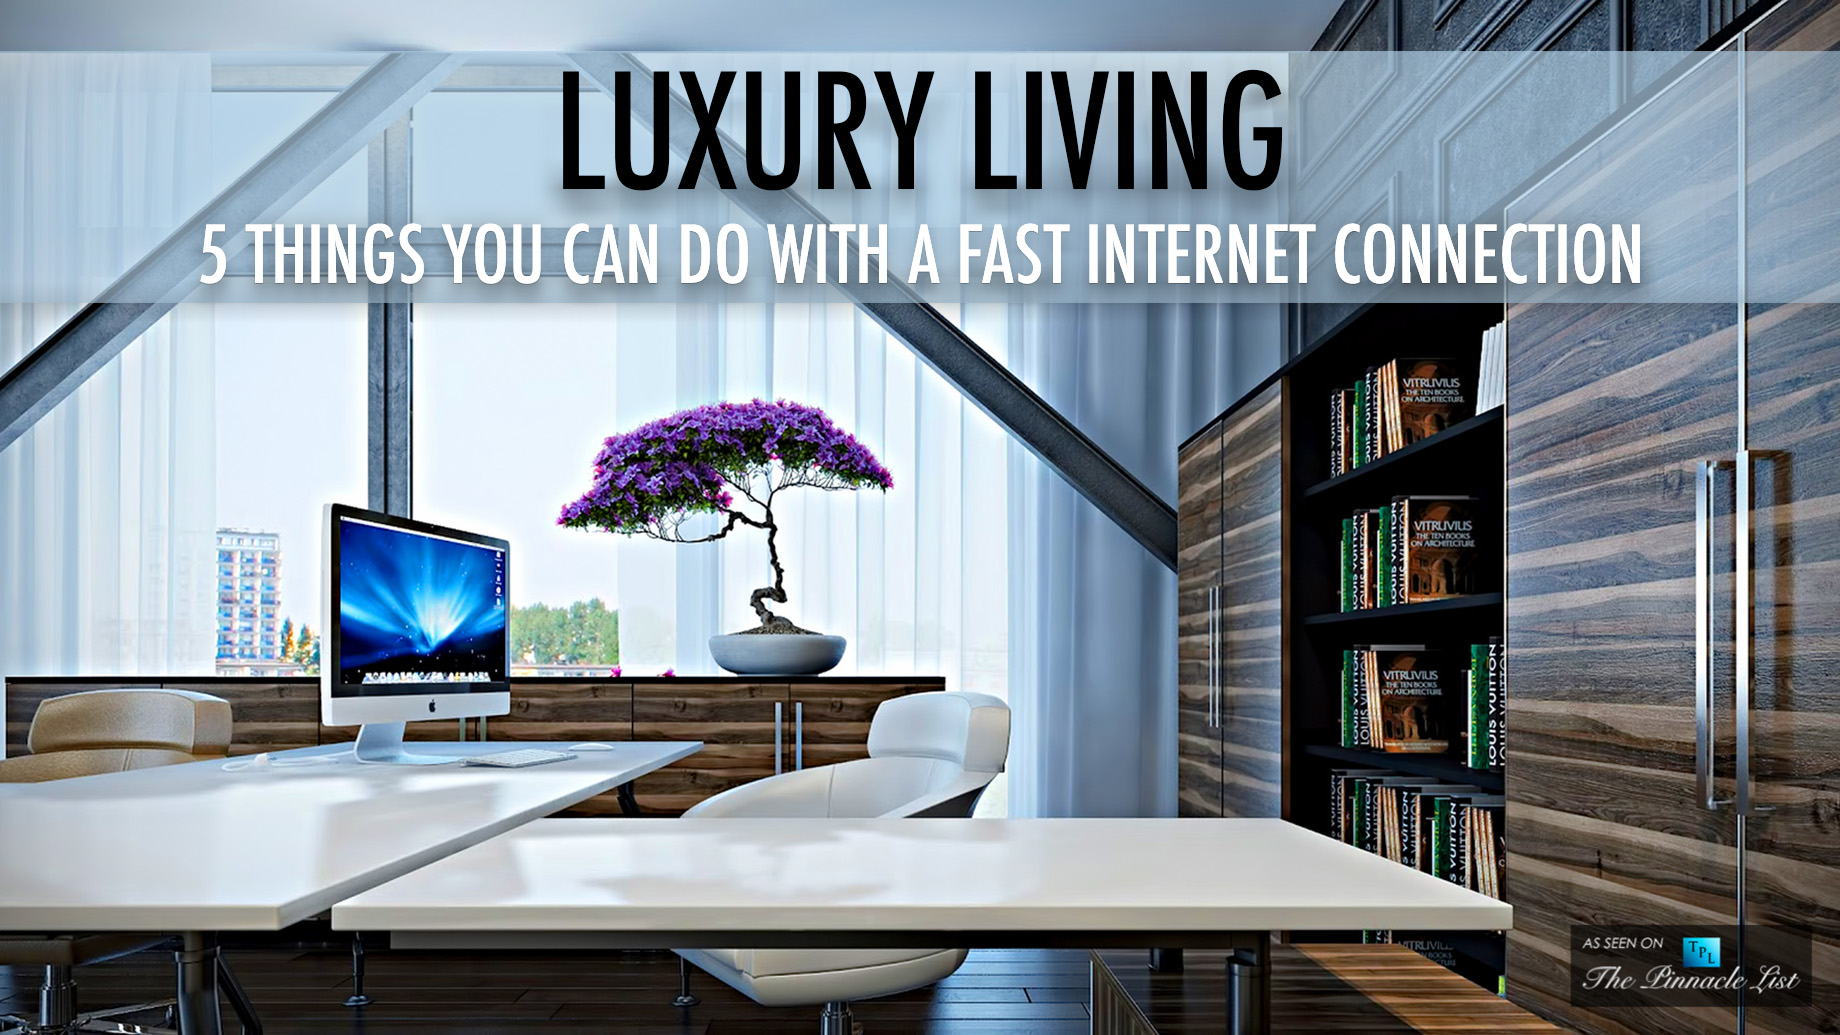 Luxury Living - 5 Things You Can Do With A Fast Internet Connection